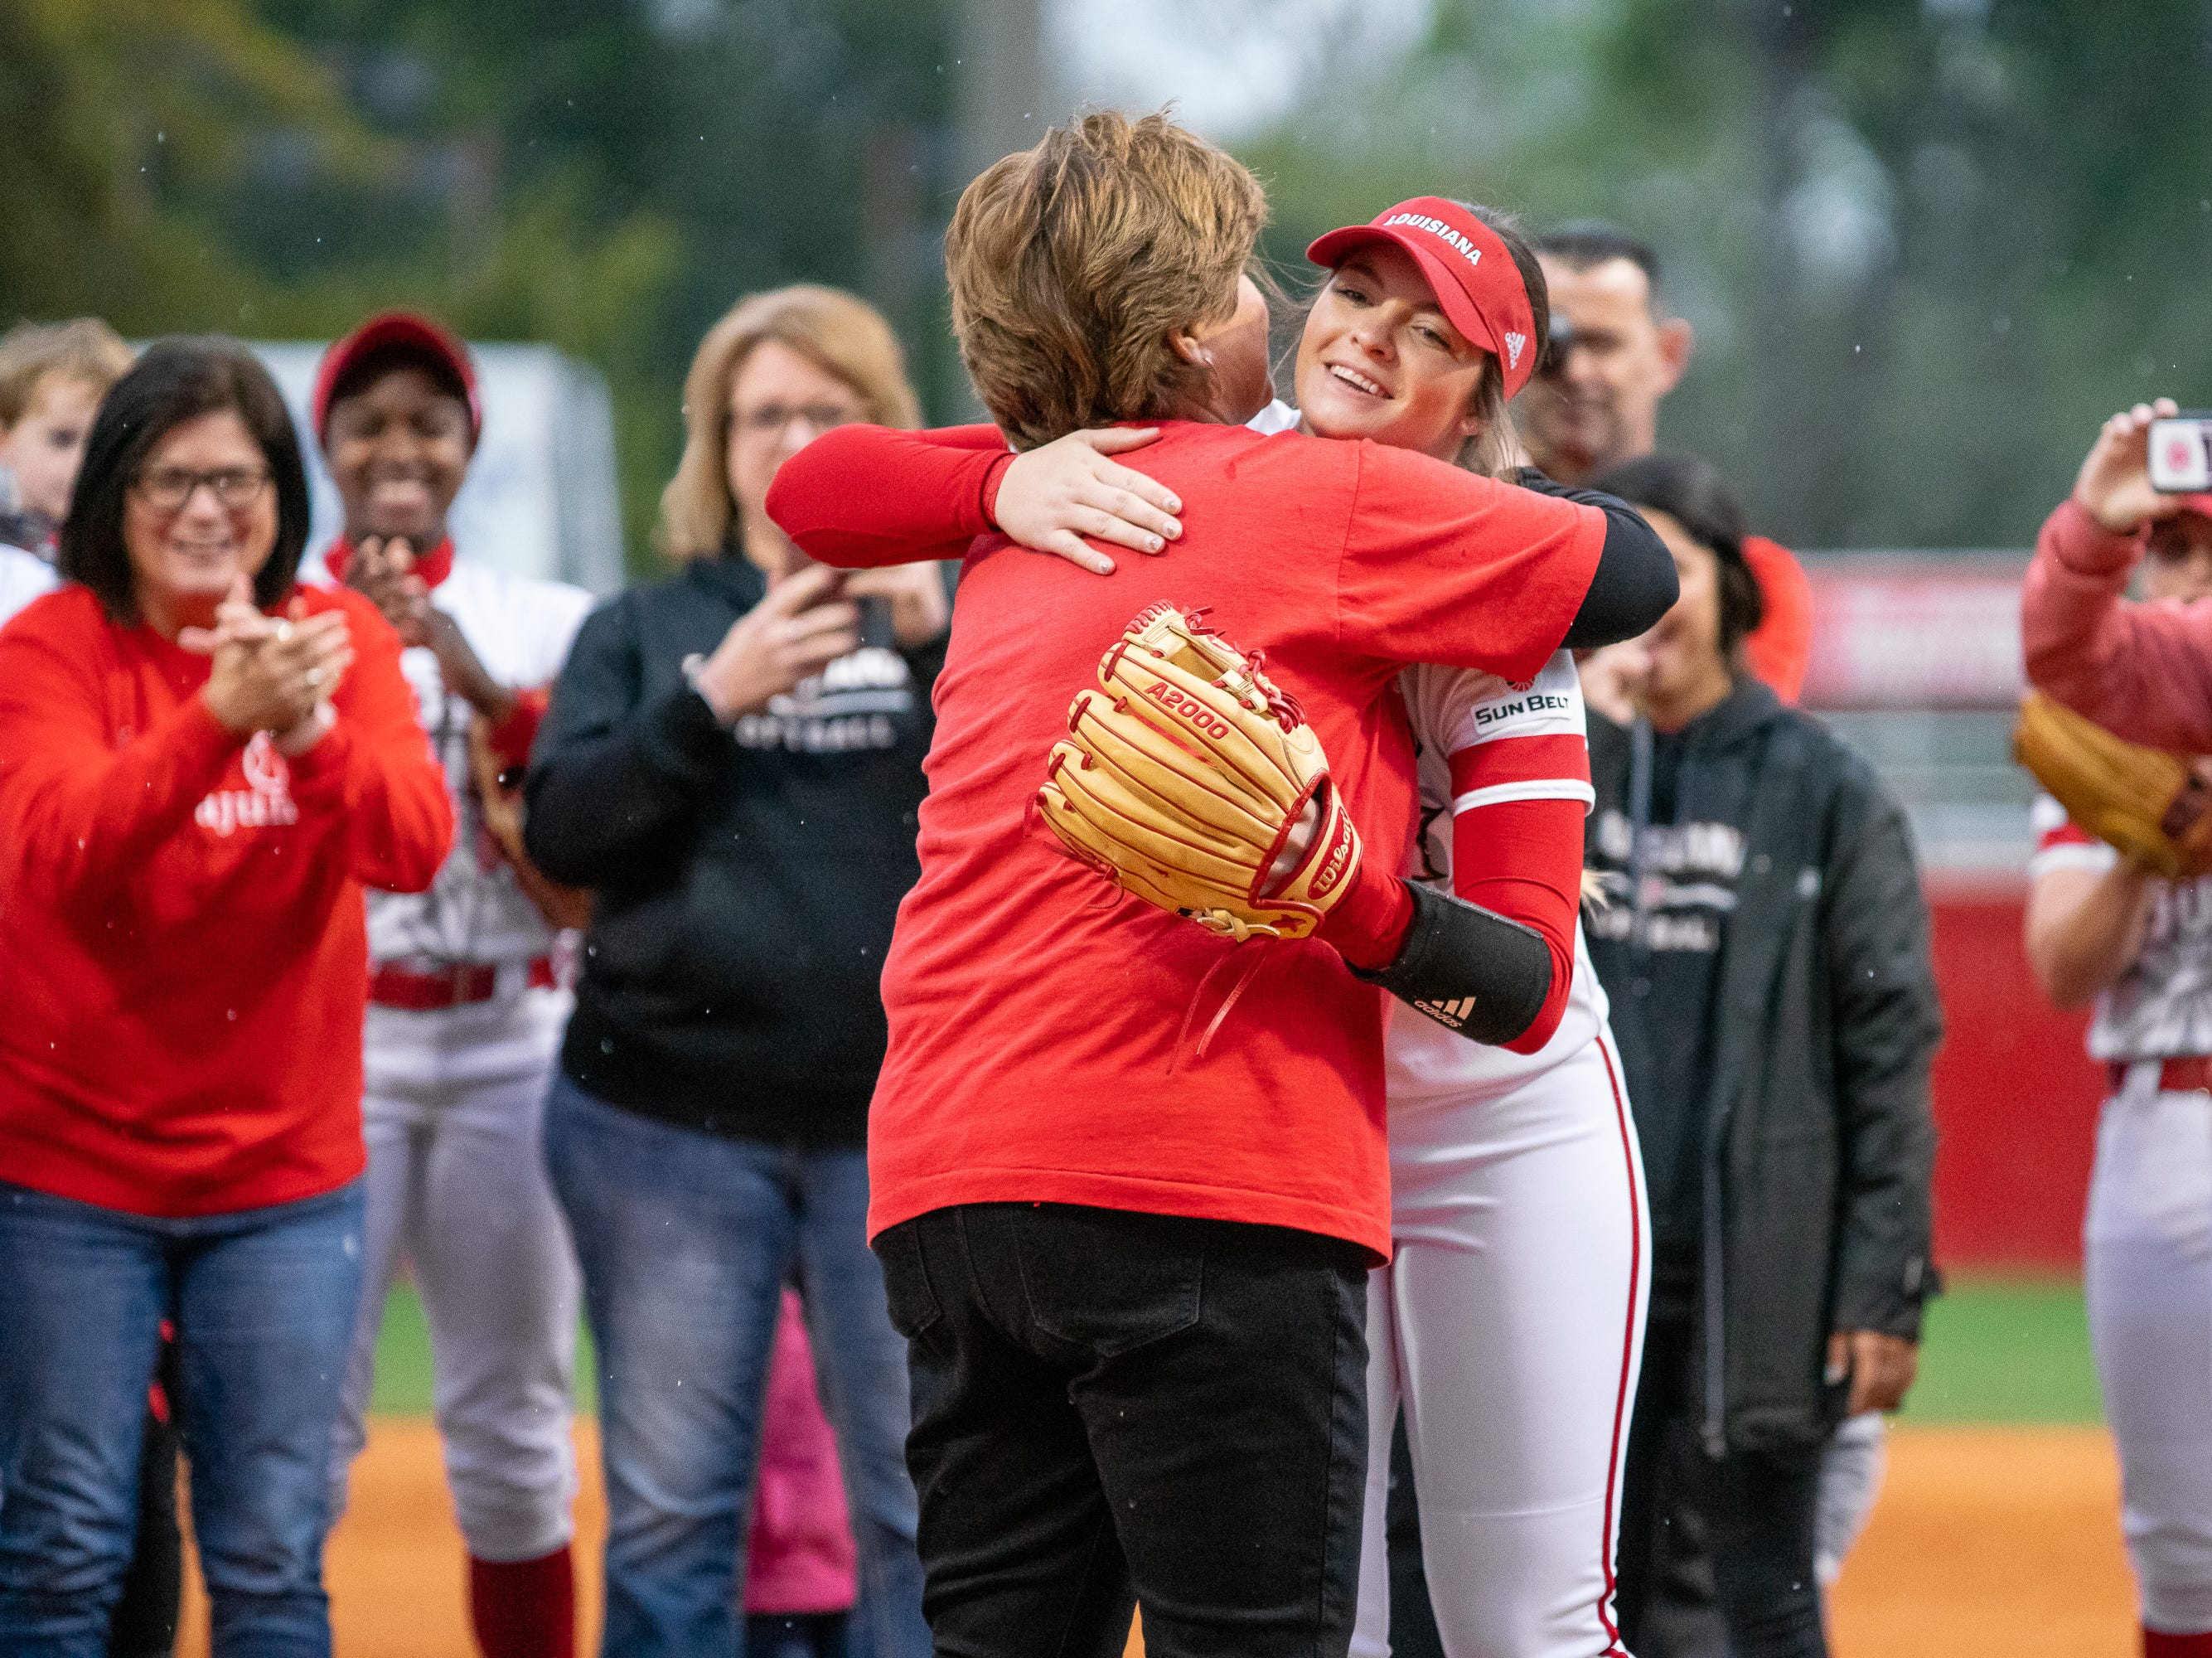 Former UL softball coach Yvette Girouard embraces Summer Ellyson after the first pitch as the Ragin' Cajuns take on the Troy Trojans at Lamson Park, Yvette Girouard Field on Friday, March 15, 2019.